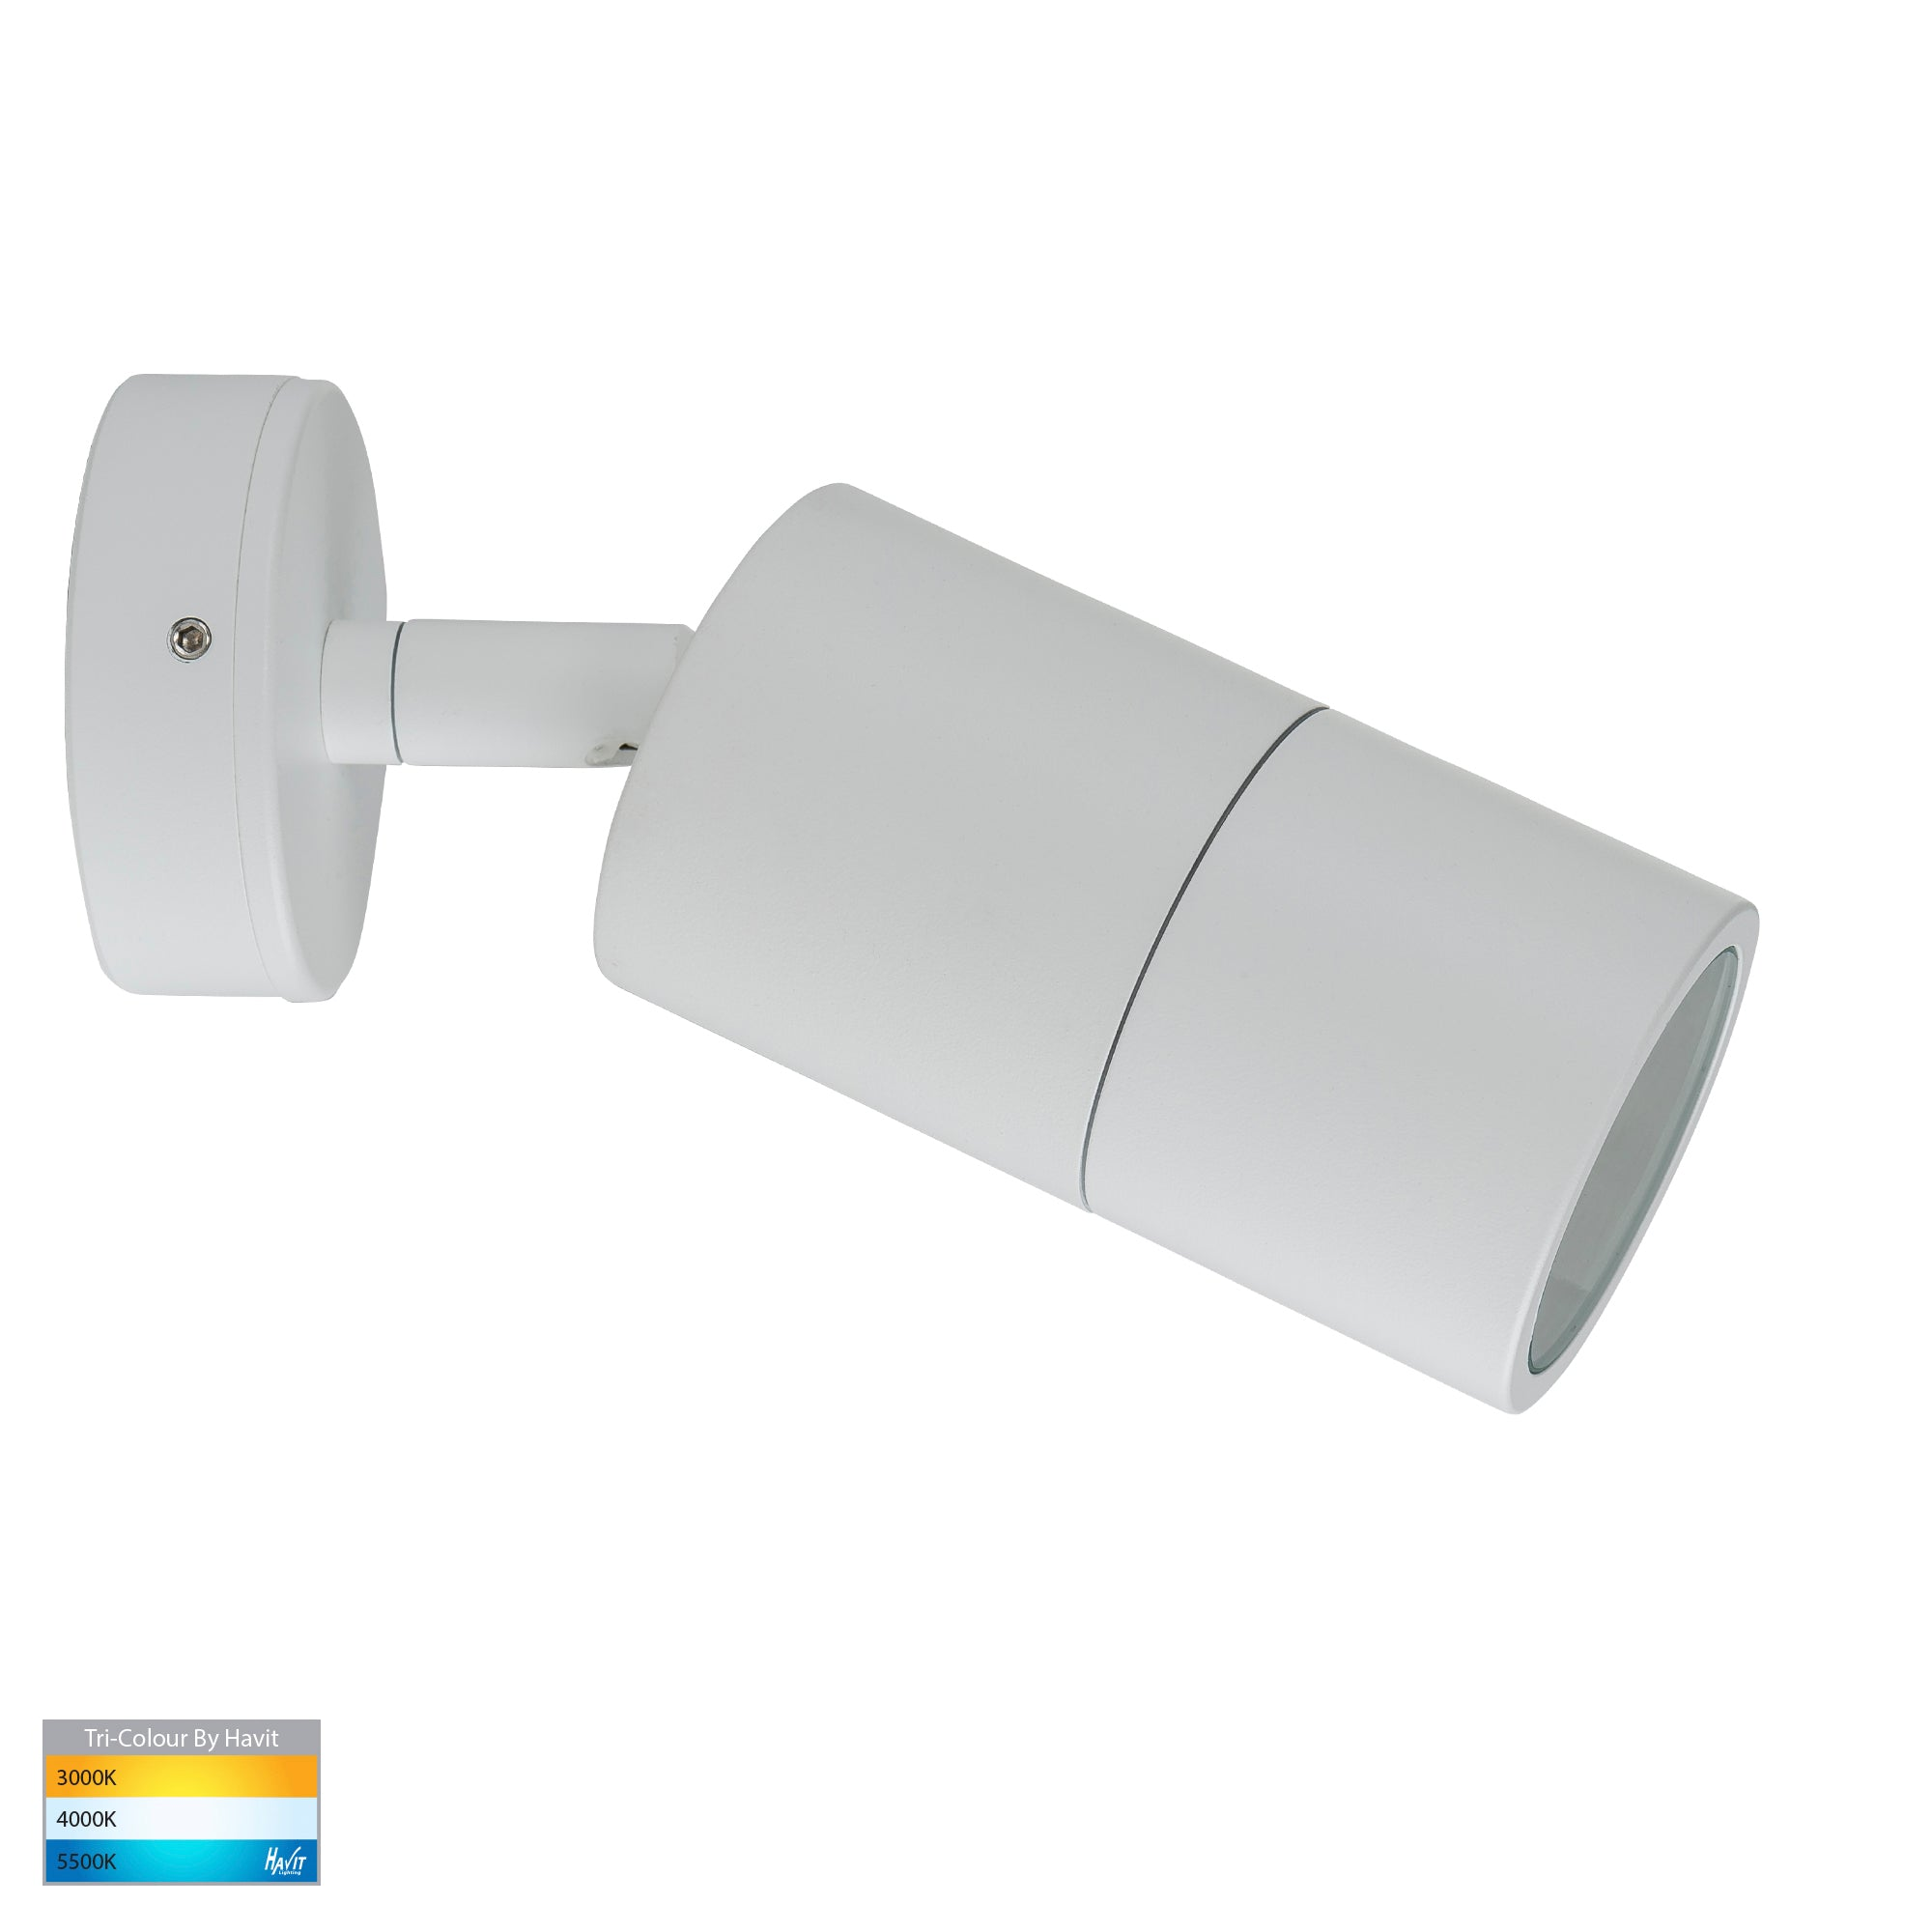 HV1235T-HV1237T - Tivah White TRI Colour Single Adjustable Wall Pillar Lights